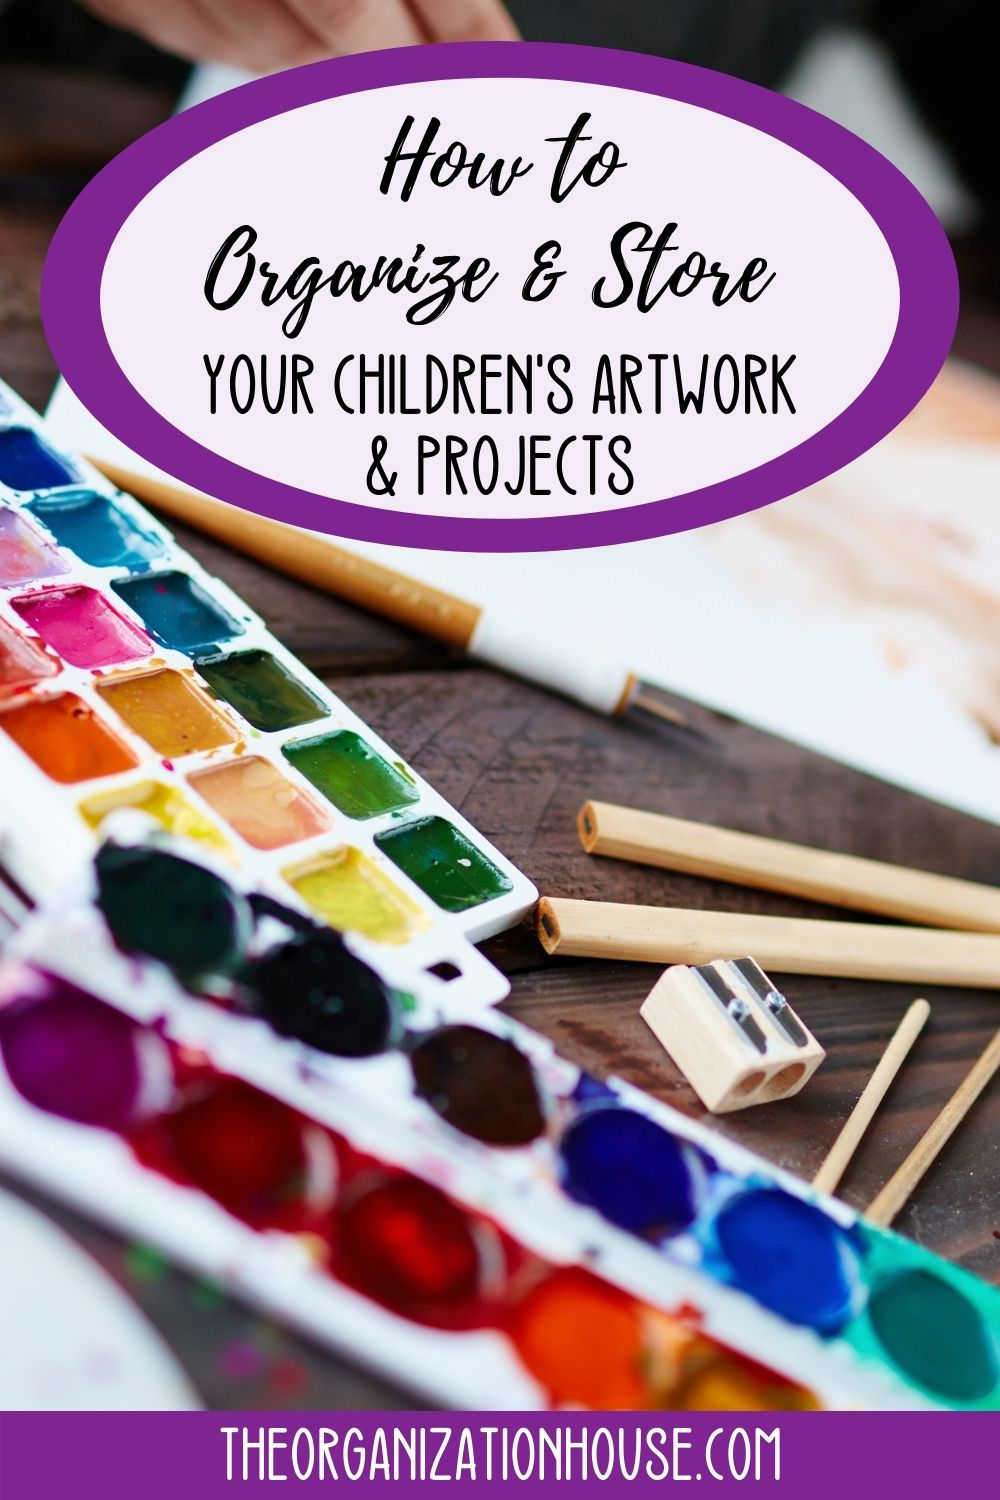 How to Organize and Store Your Children's Artwork and Projects